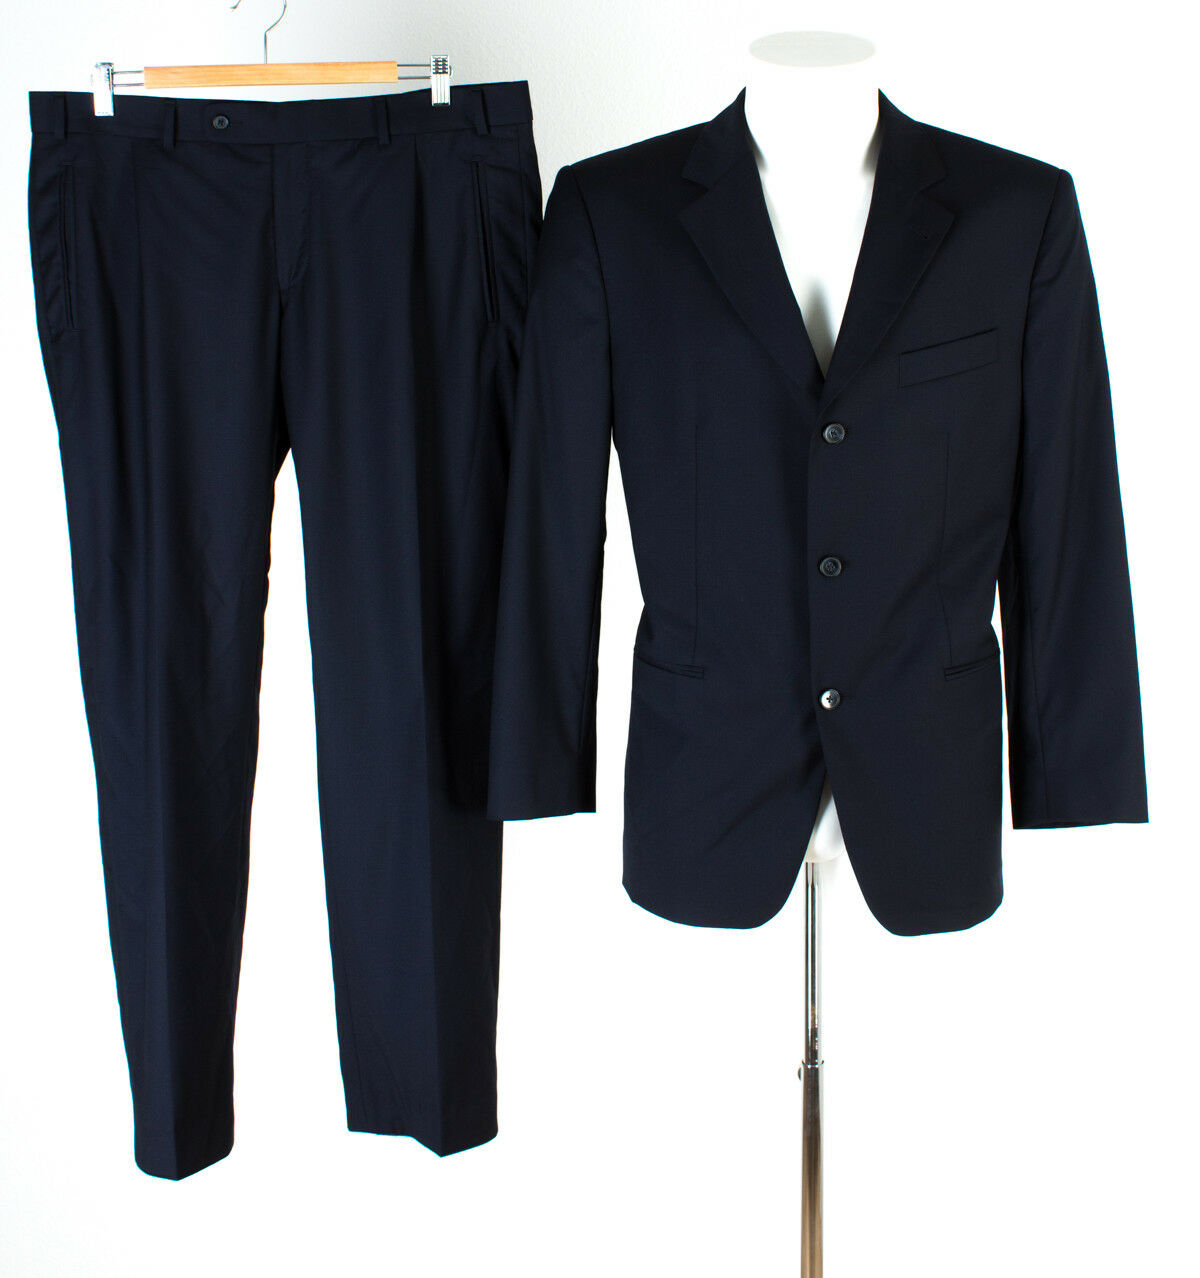 MAILE by Lgold Piana Anzug Gr. 26 Wolle Sakko Hose Business Suit